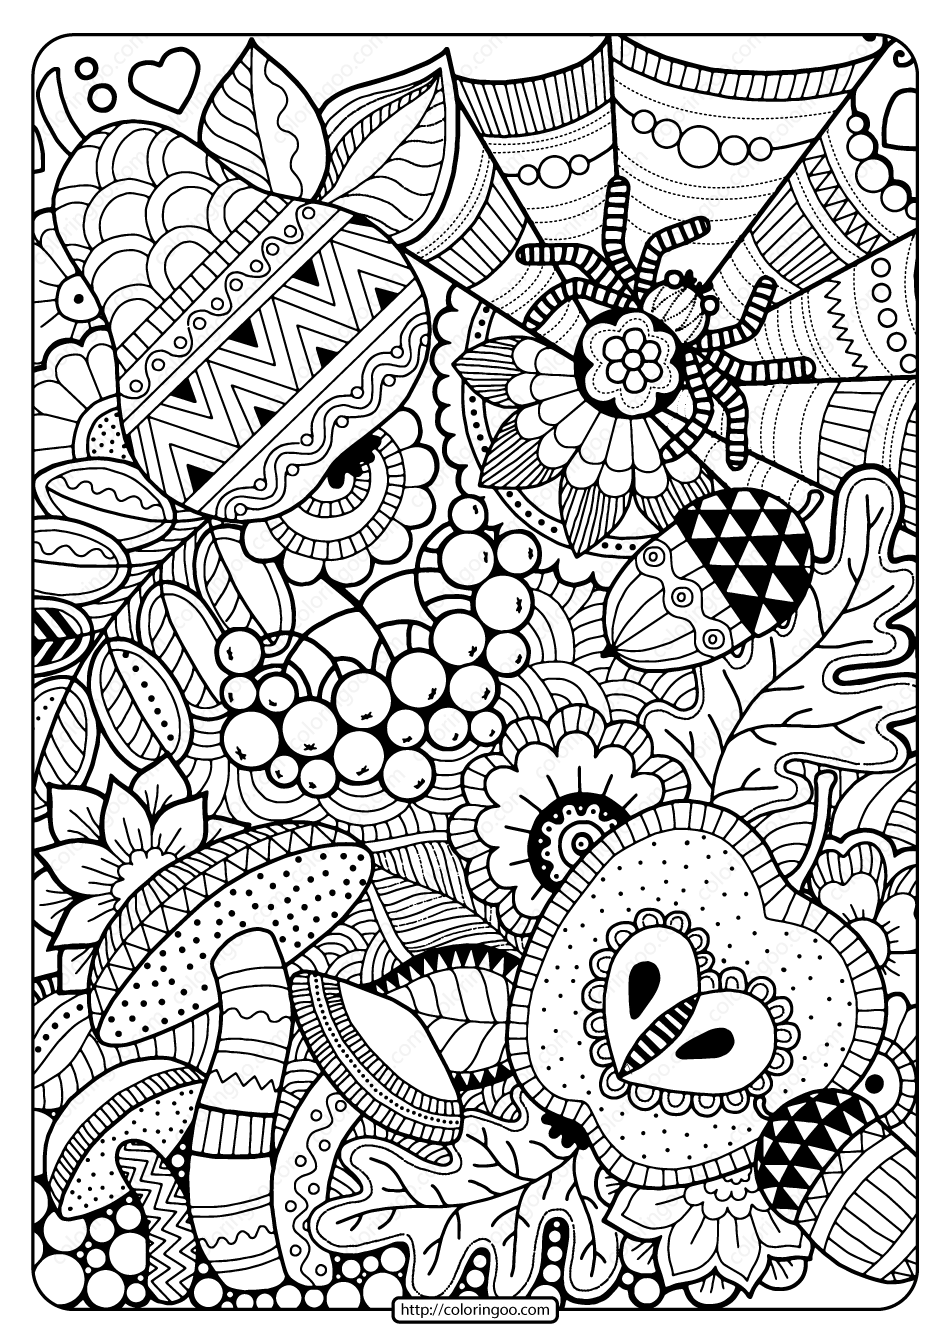 Zentangle Coloring Pages New Tips